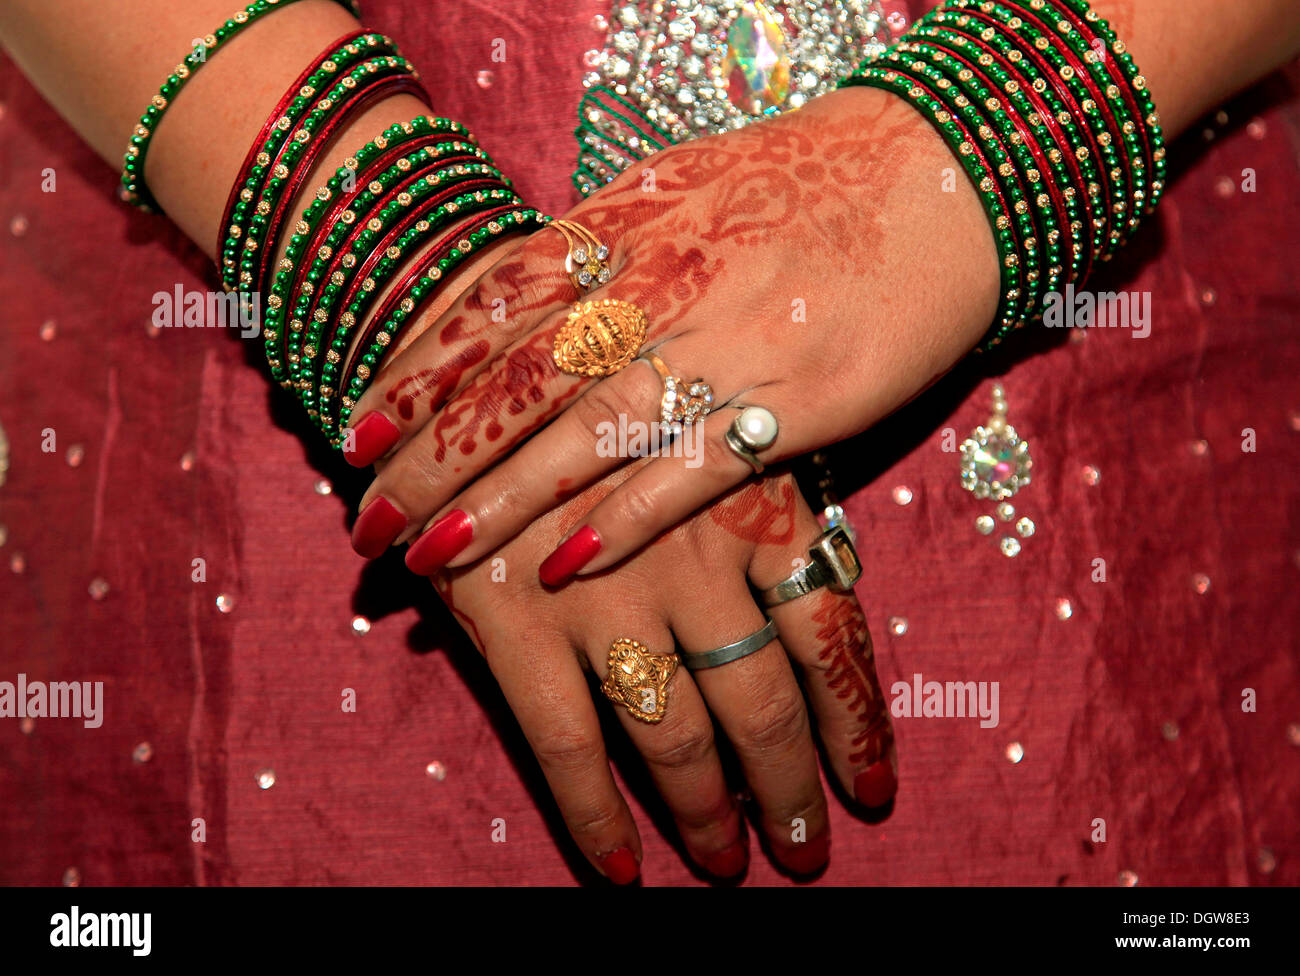 Woman hand with colorful bangles Stock Photo, Royalty Free Image ...